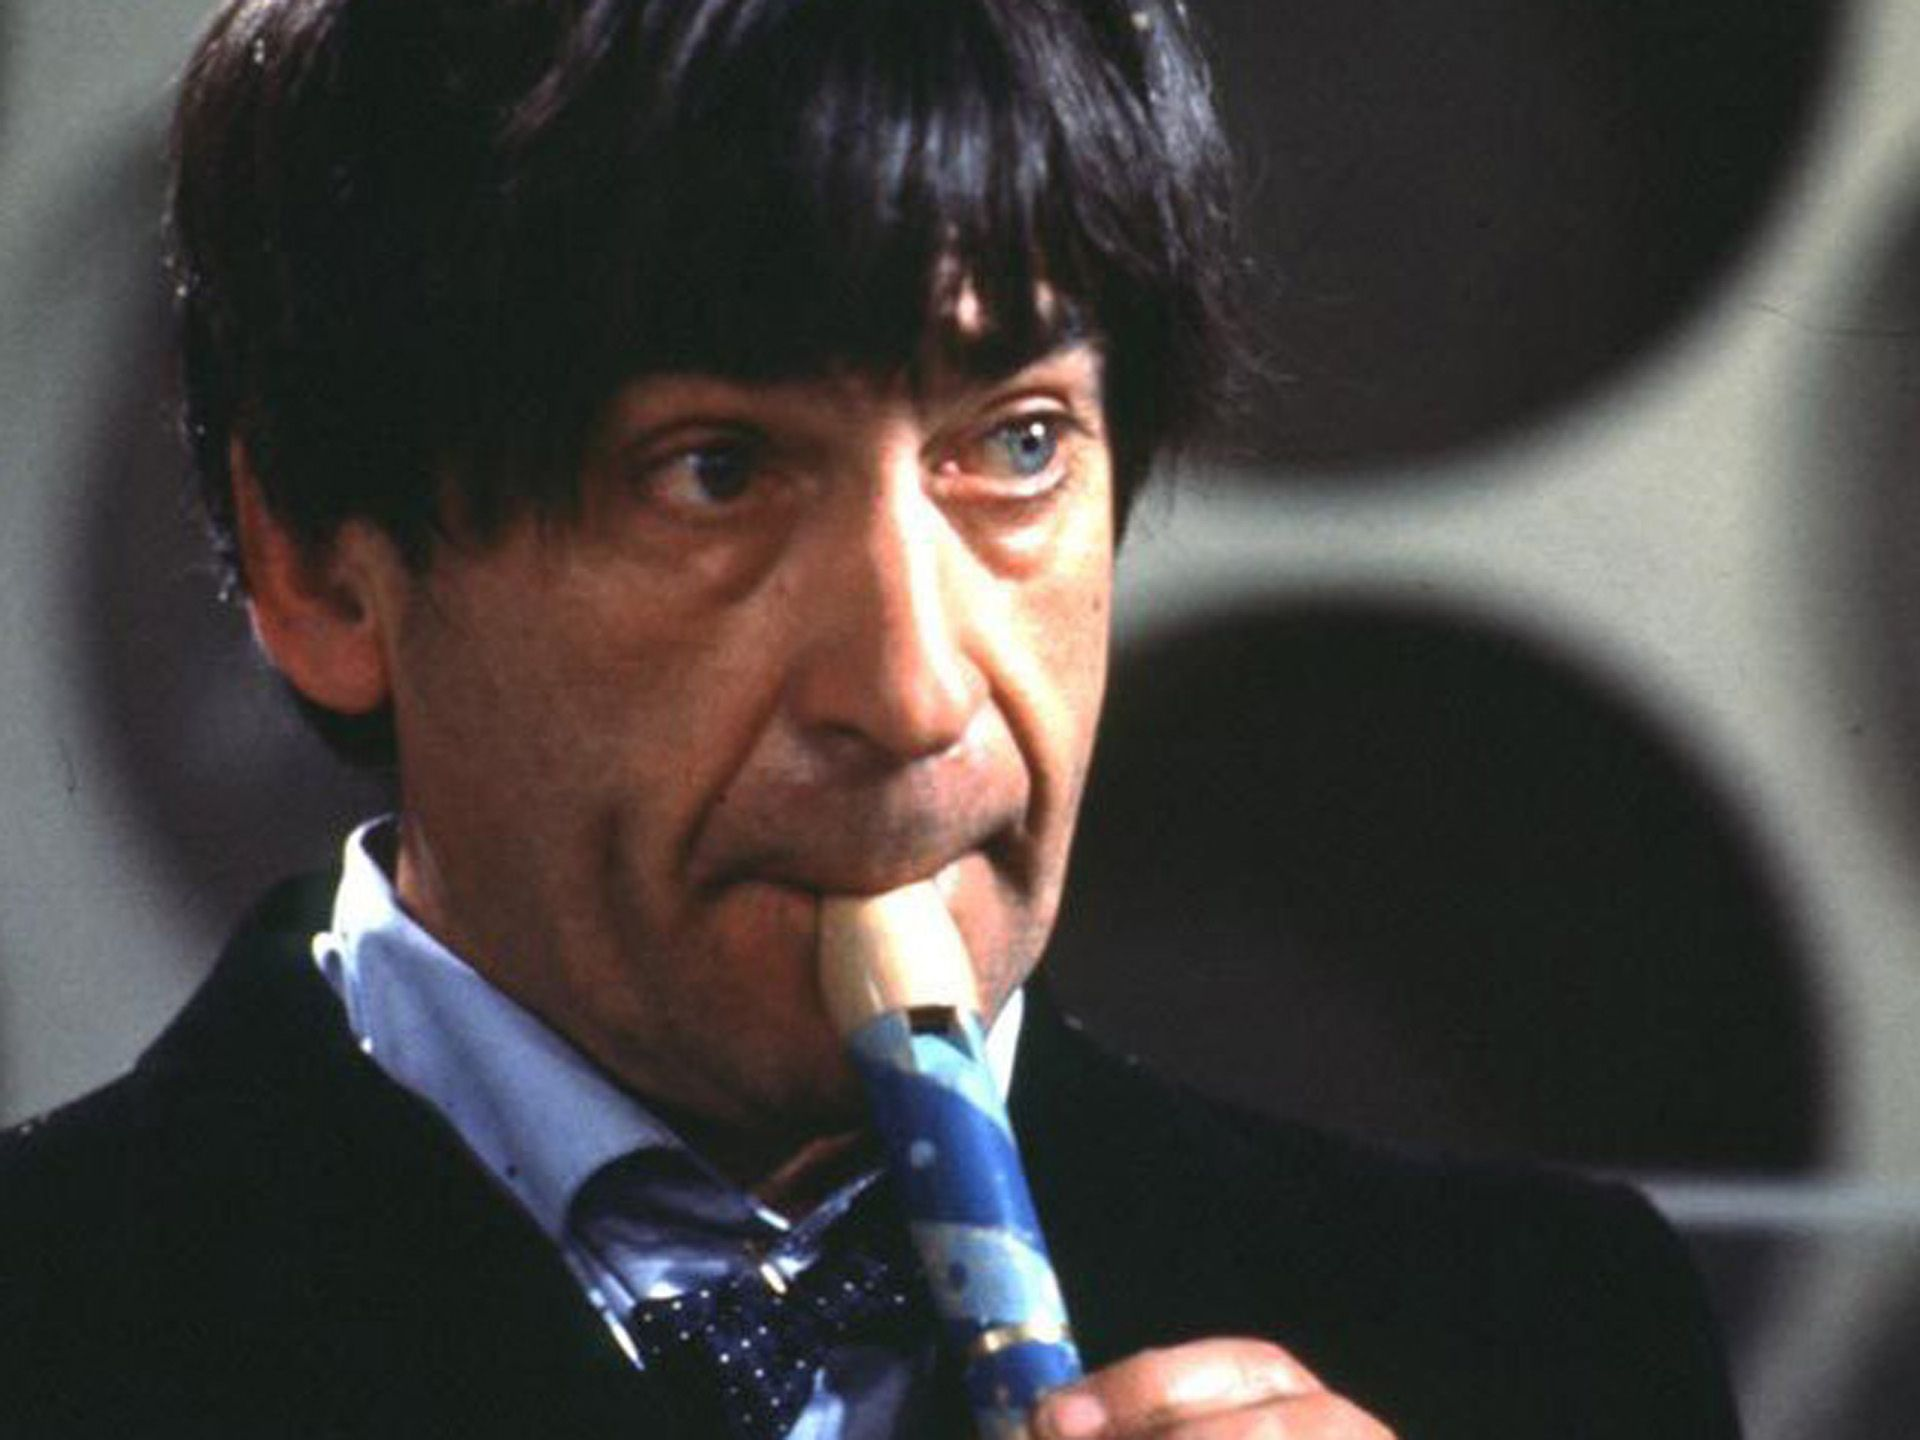 patrick troughton facebookpatrick troughton imdb, patrick troughton facebook, patrick troughton birthday, patrick troughton, patrick troughton doctor who, patrick troughton death, patrick troughton grave, patrick troughton the omen, patrick troughton young, patrick troughton 1987, patrick troughton omen death, patrick troughton episodes, patrick troughton son, patrick troughton height, patrick troughton grandson, patrick troughton interview, patrick troughton autograph, patrick troughton regeneration, patrick troughton death news, patrick troughton sonic screwdriver